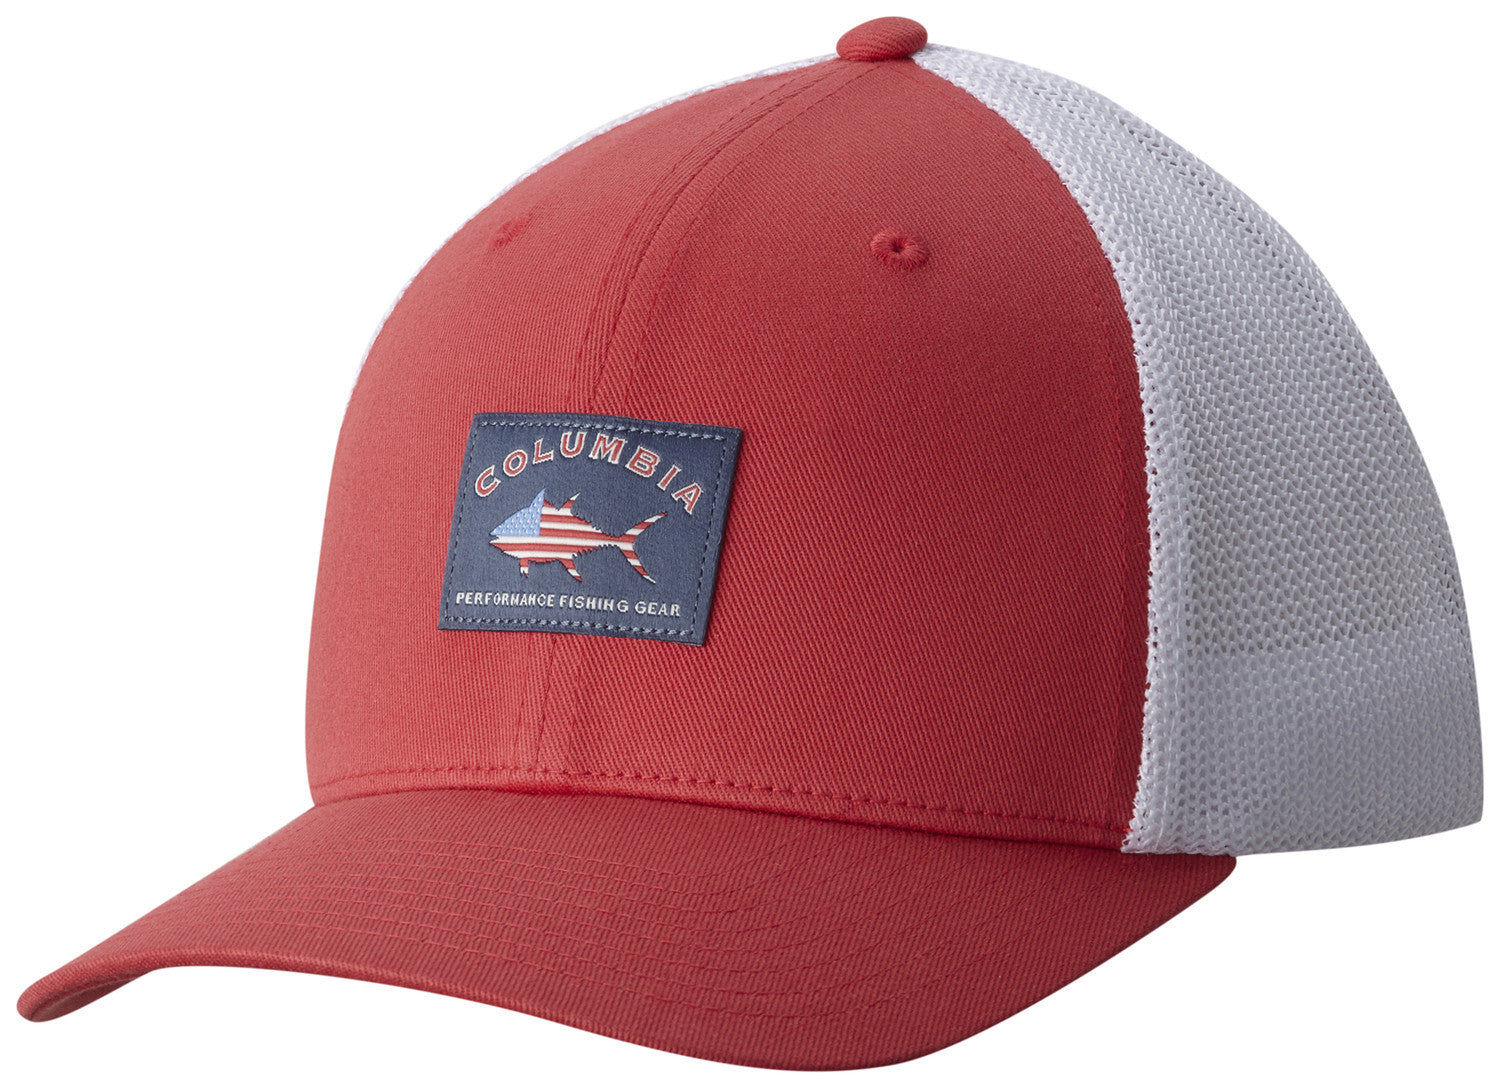 10a3bed134f0f PFG MESH™ BALL CAP SUNSET RED   BASS FLAG Hats Columbia - Hook 1 Outfitters